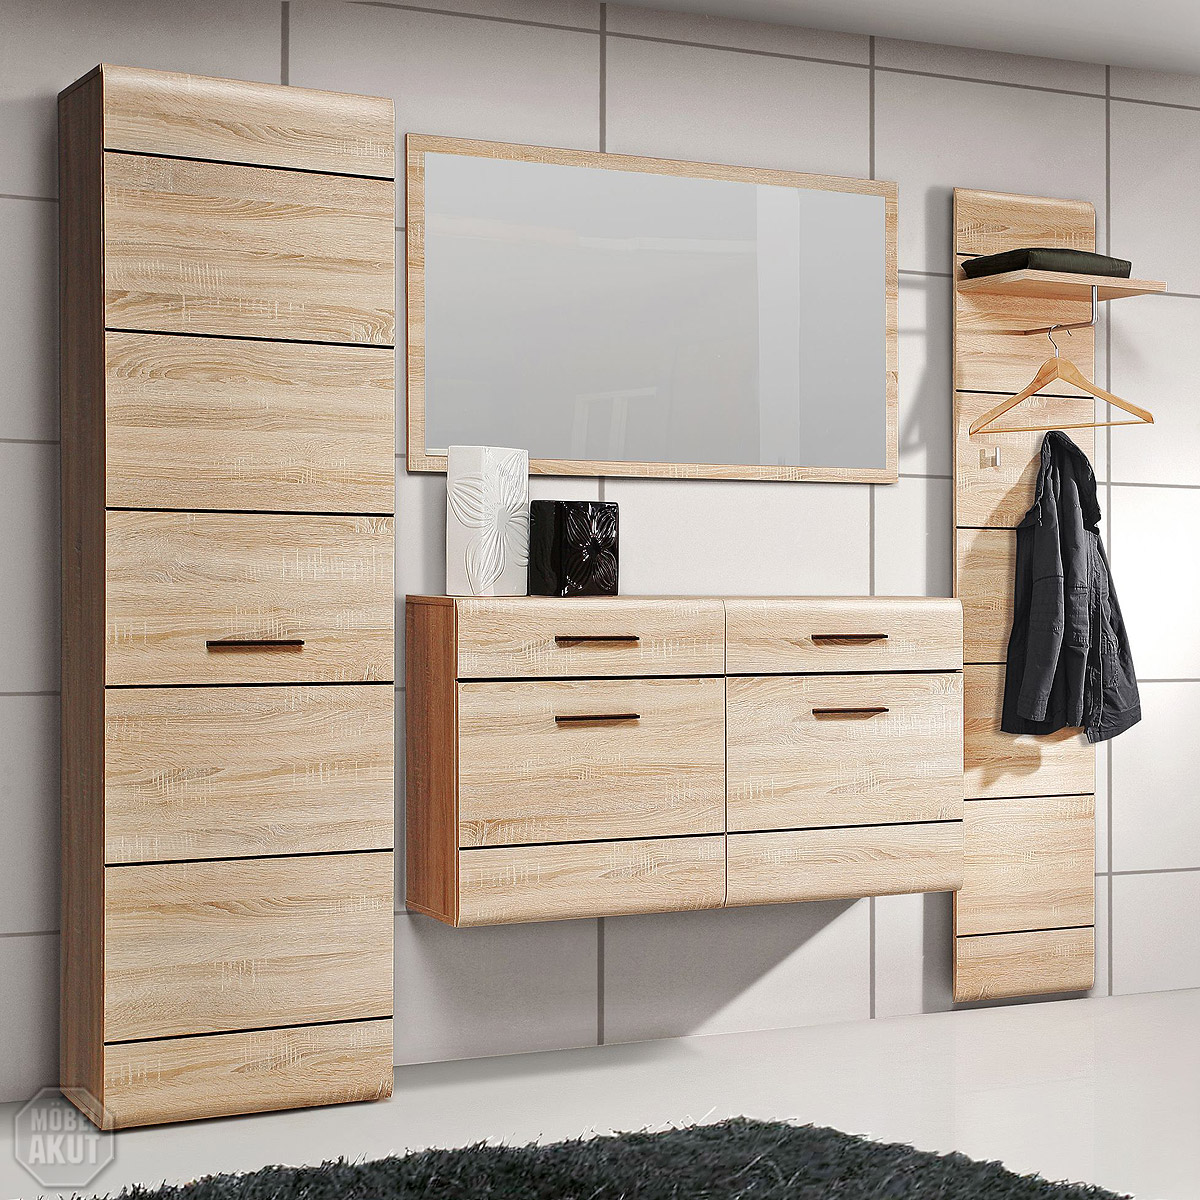 garderobenset 1 combino garderobe schuhschrank spiegel sonoma denver eiche ebay. Black Bedroom Furniture Sets. Home Design Ideas